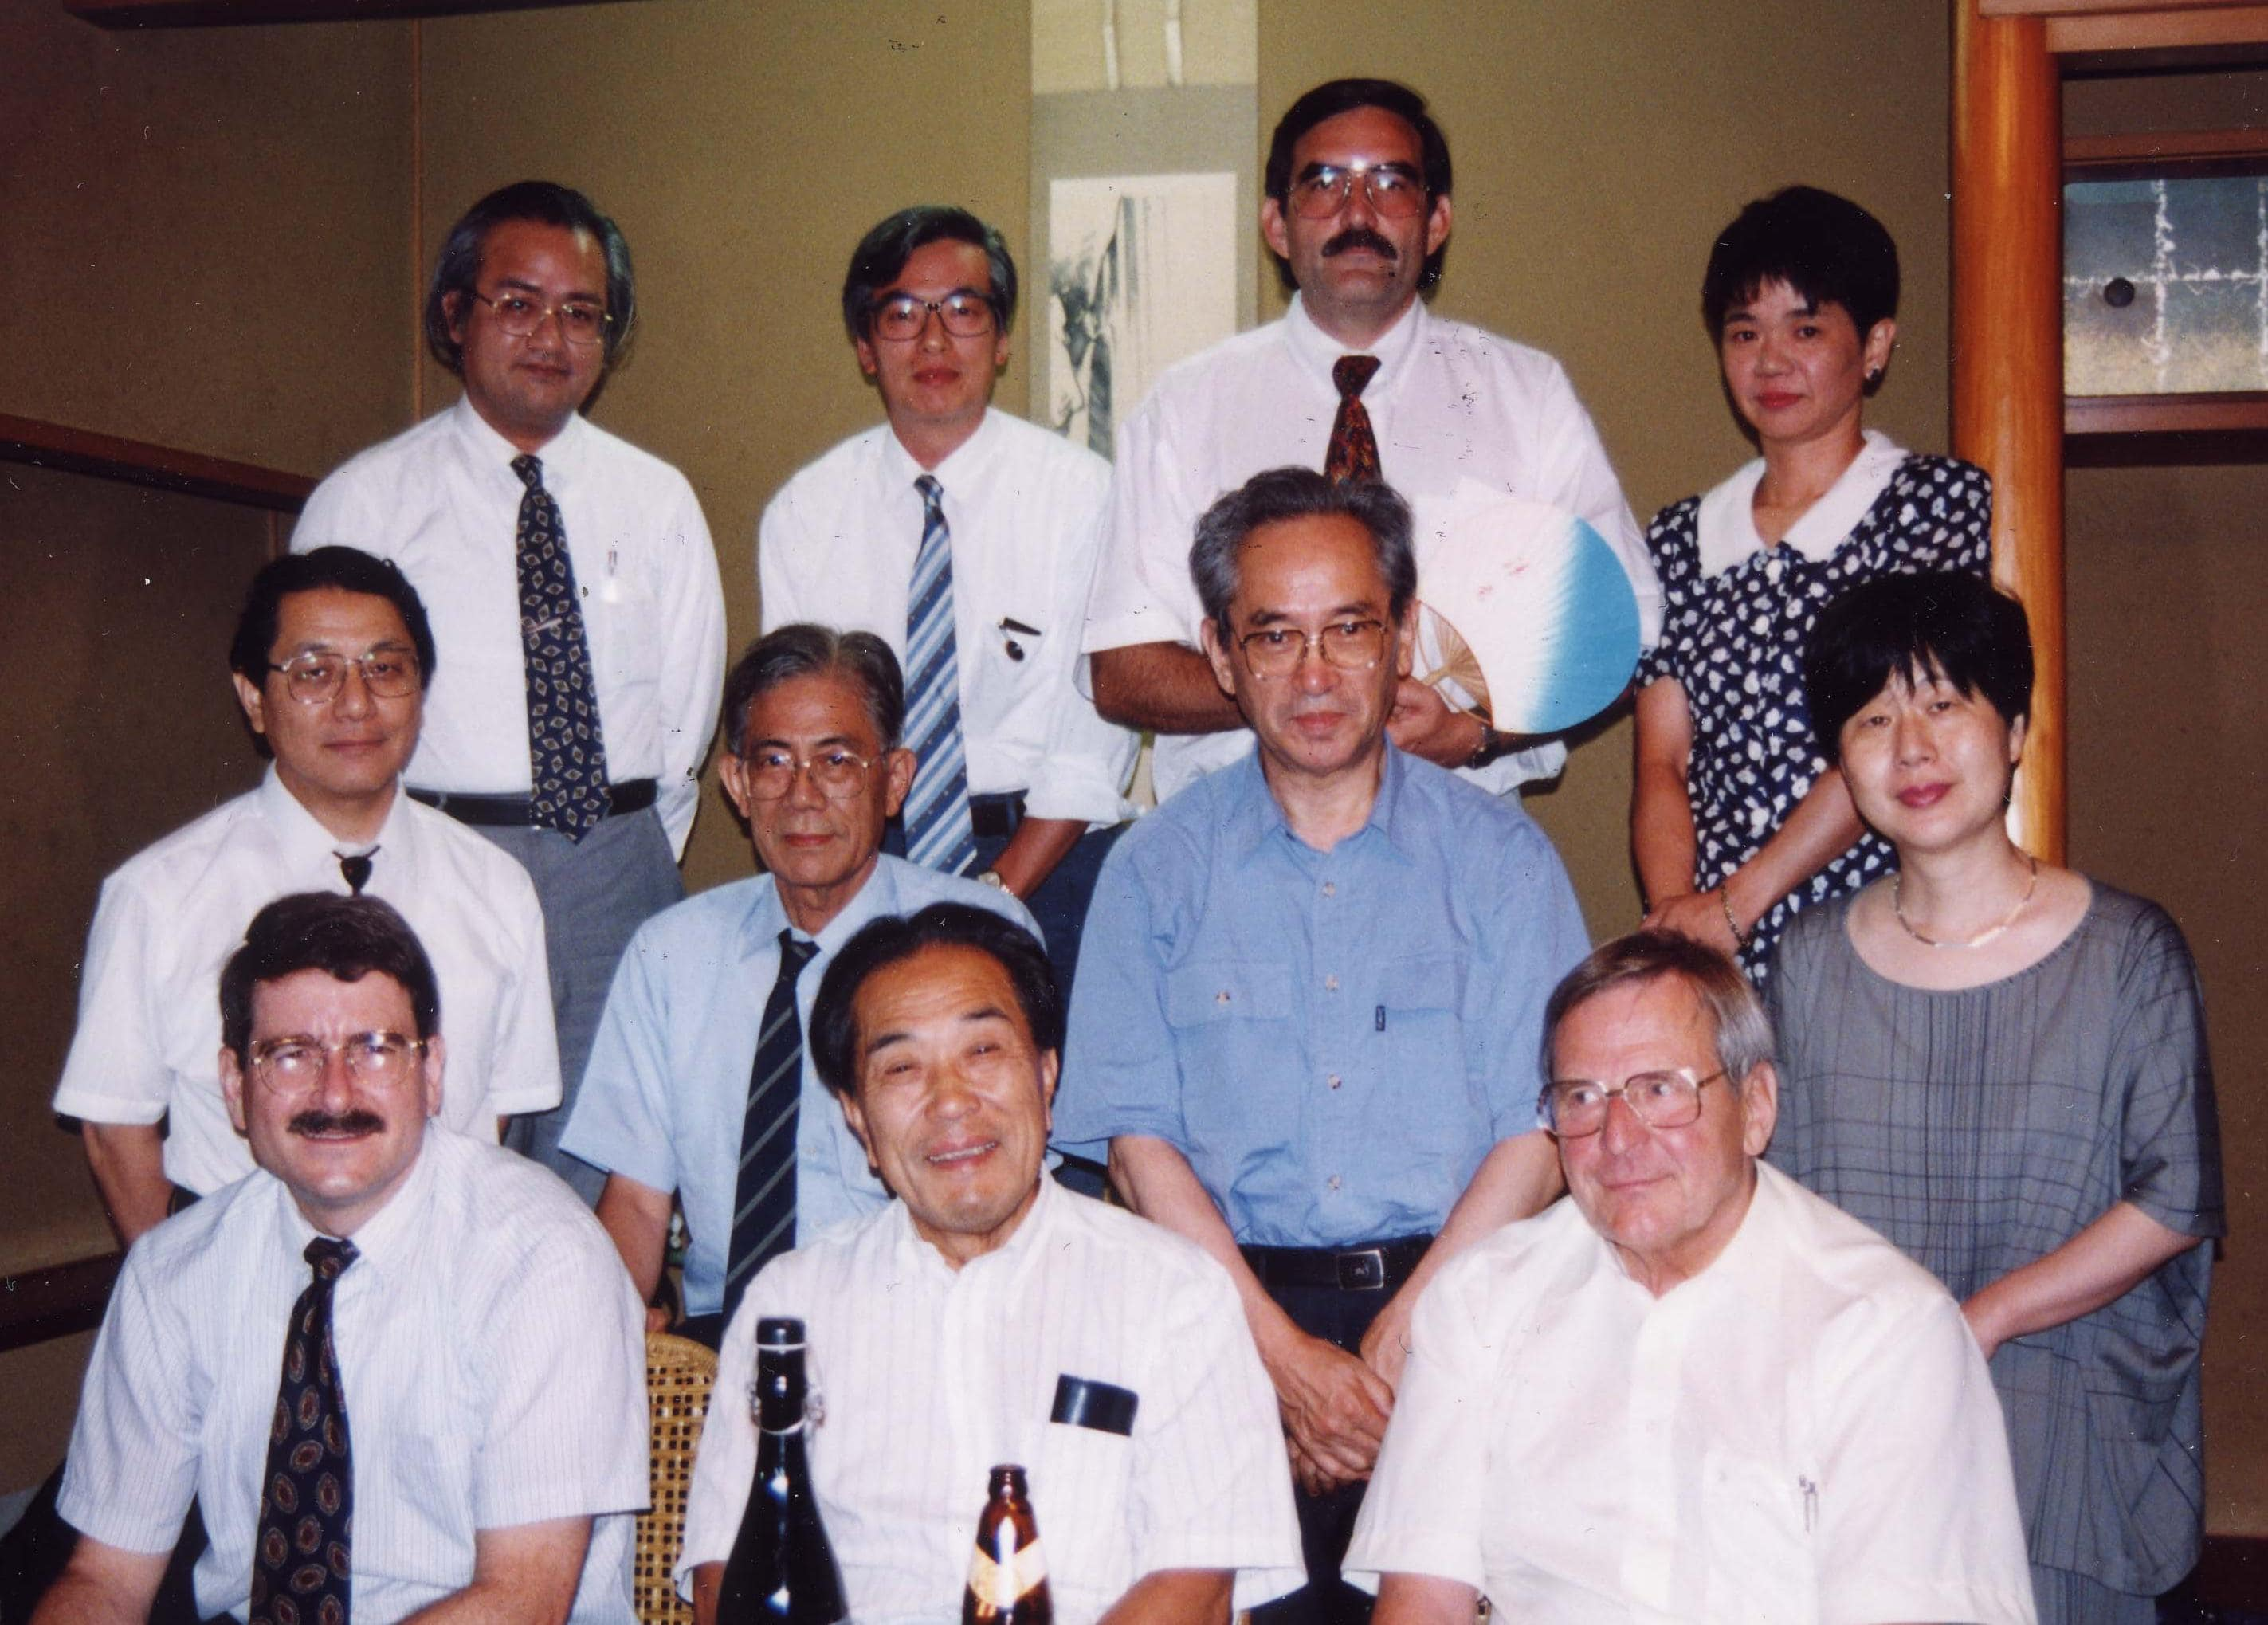 Bottom row left to right: Drs. Holmes, Wada and Scheffner; middle row: Drs. Oka, Ohtahara, Seino, and Ohtsuka; 